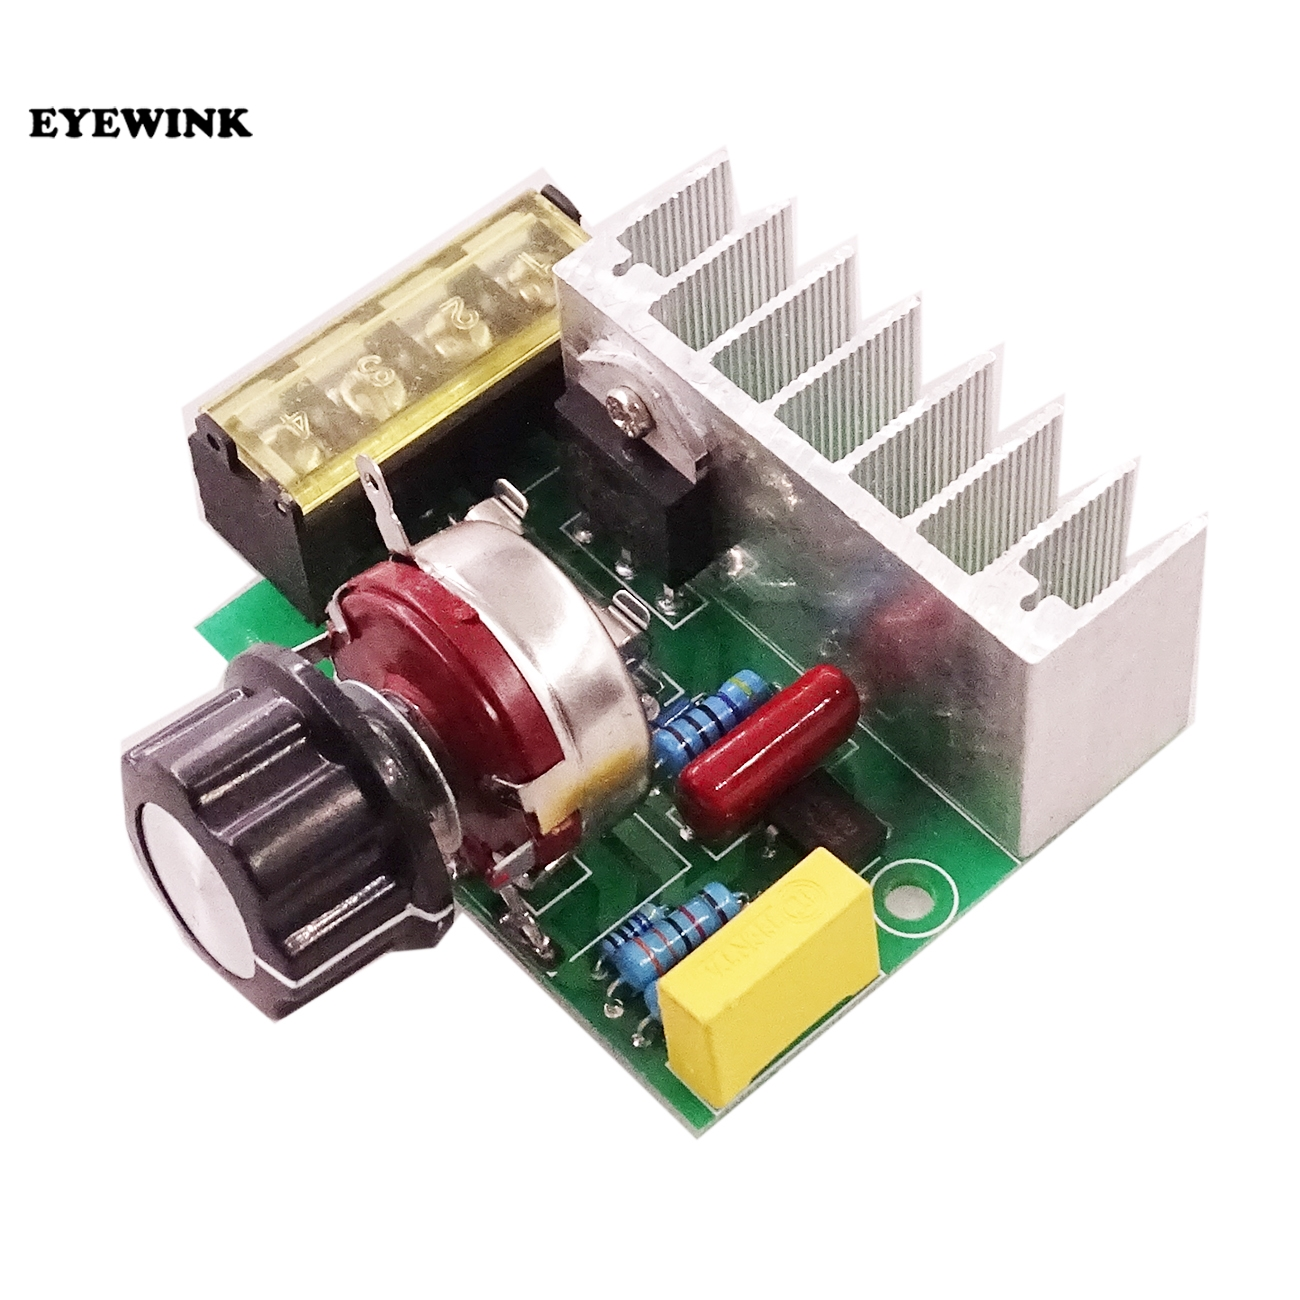 EYEWINK 1PCS/LOT 4000W AC 220V SCR Imported High Power Silicon Control Voltage Regulator Aiming Adjust Speed Thermoregulation